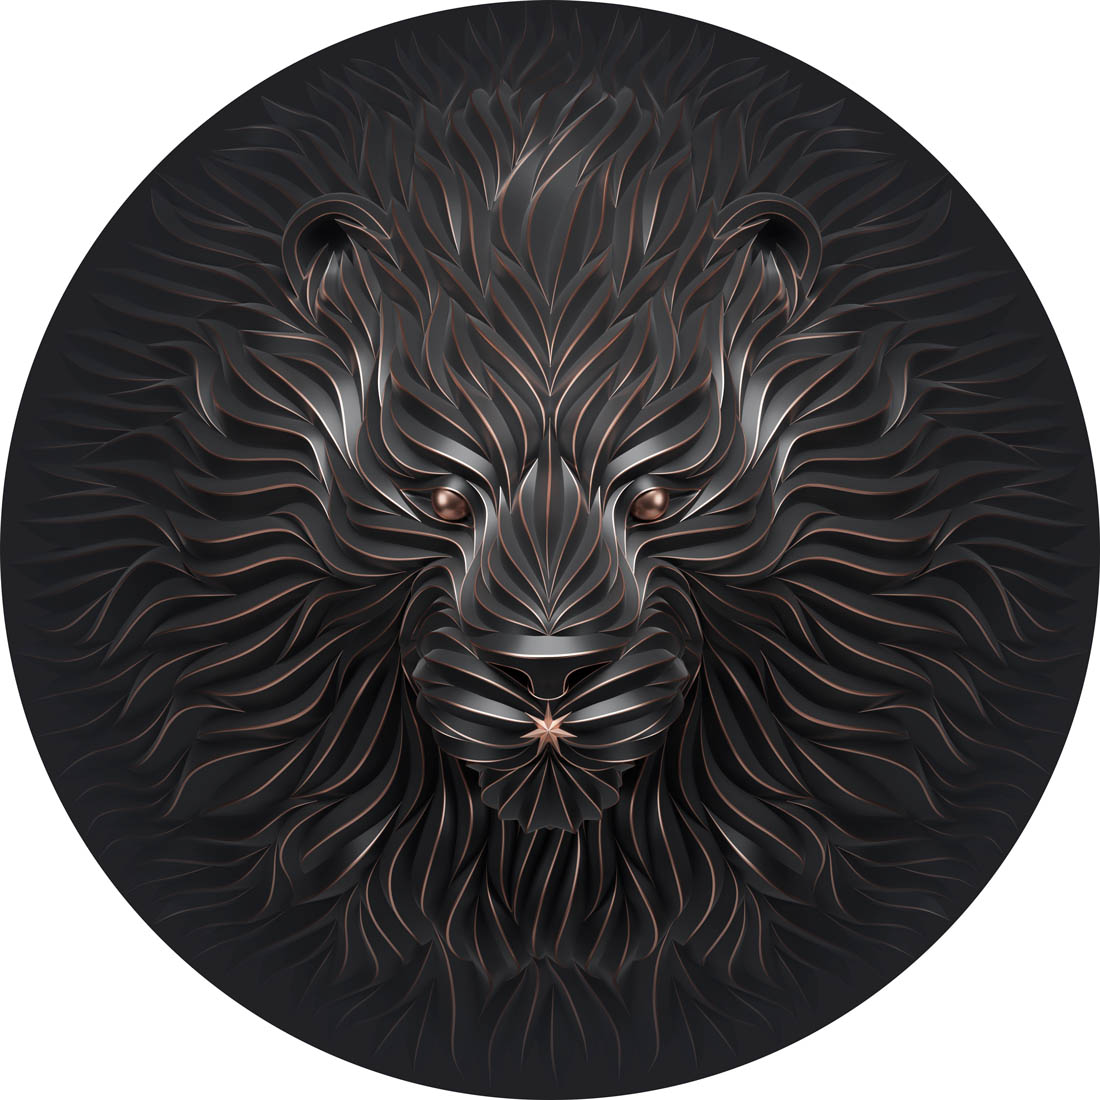 sculpture lion by maxim shkret